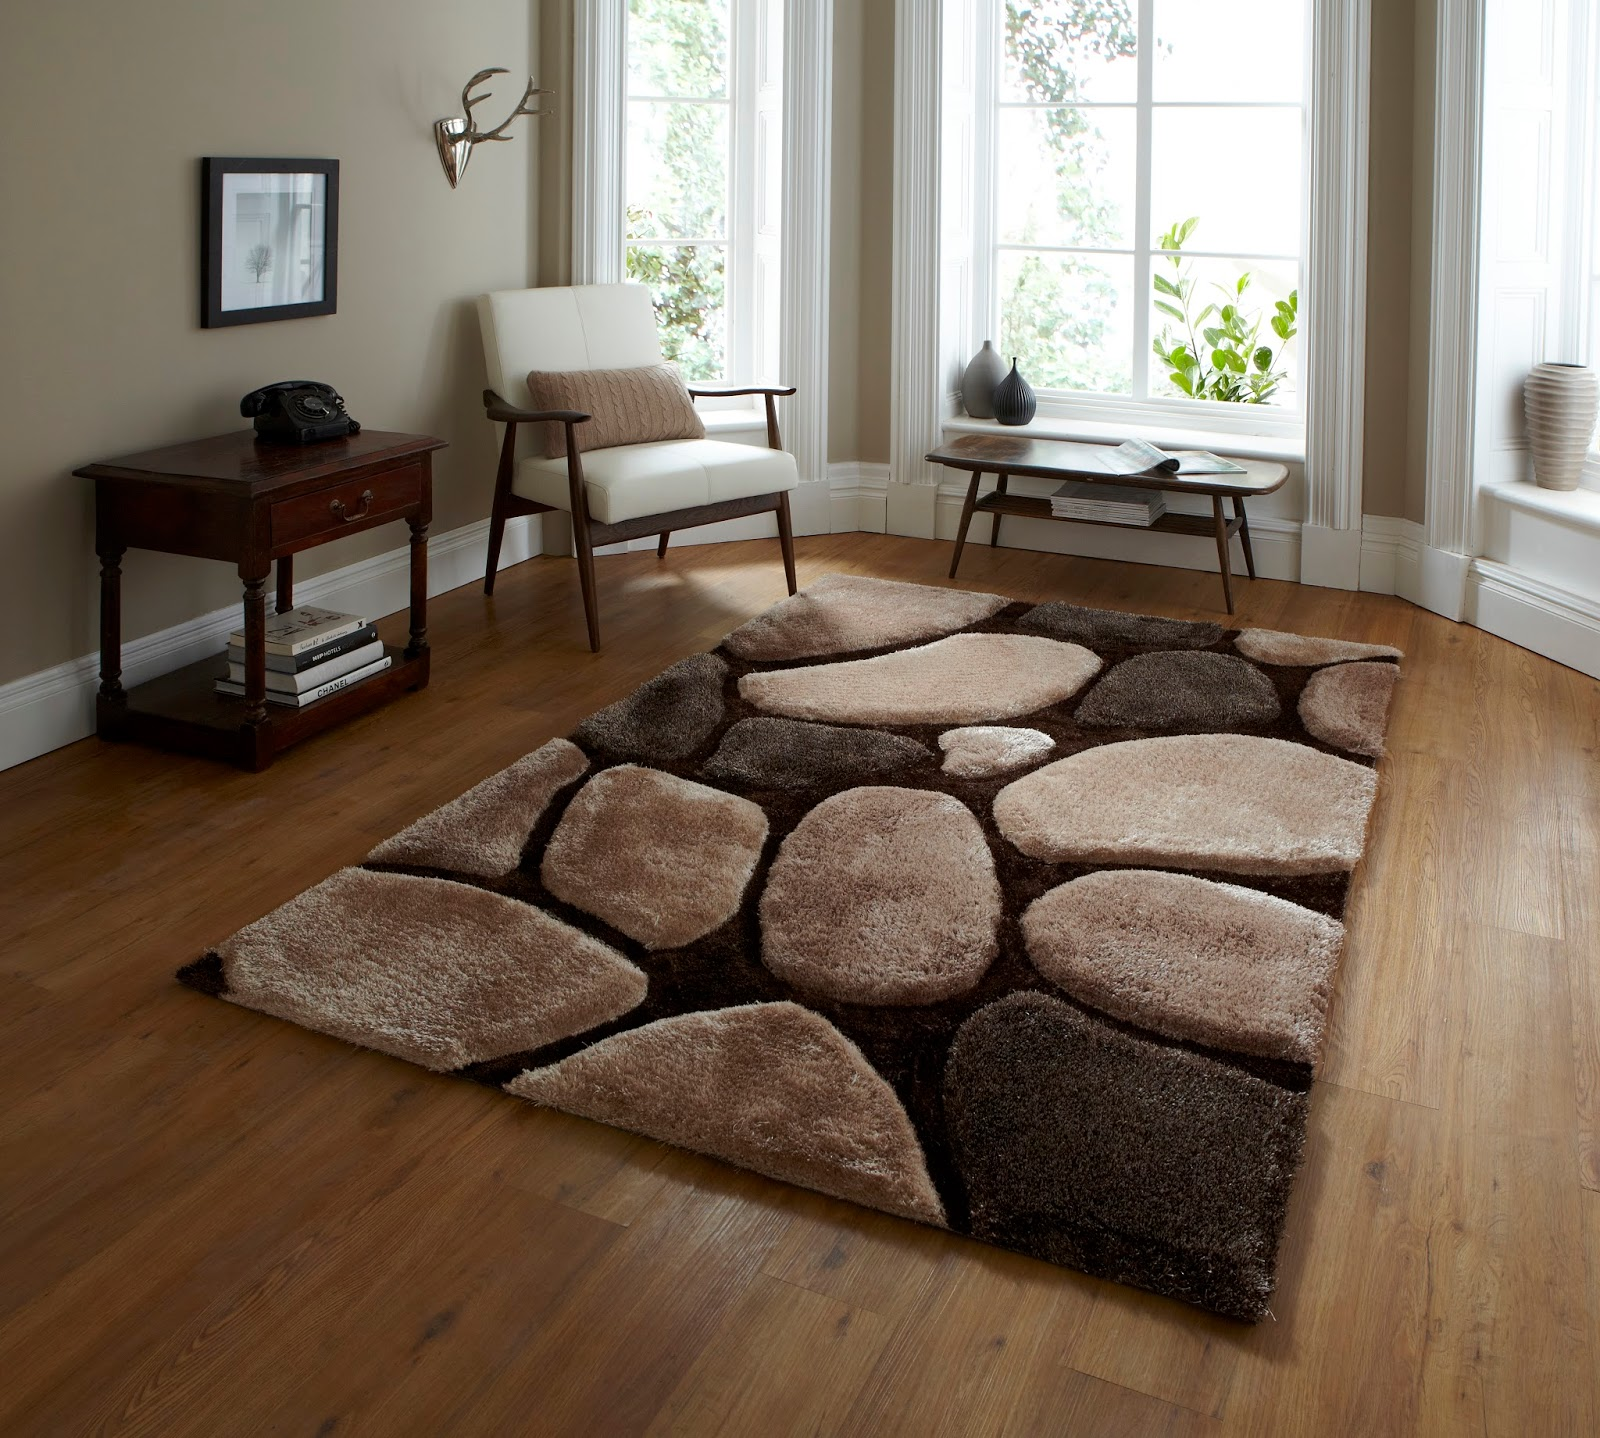 Which Rugs Are Best For Hard Floors?